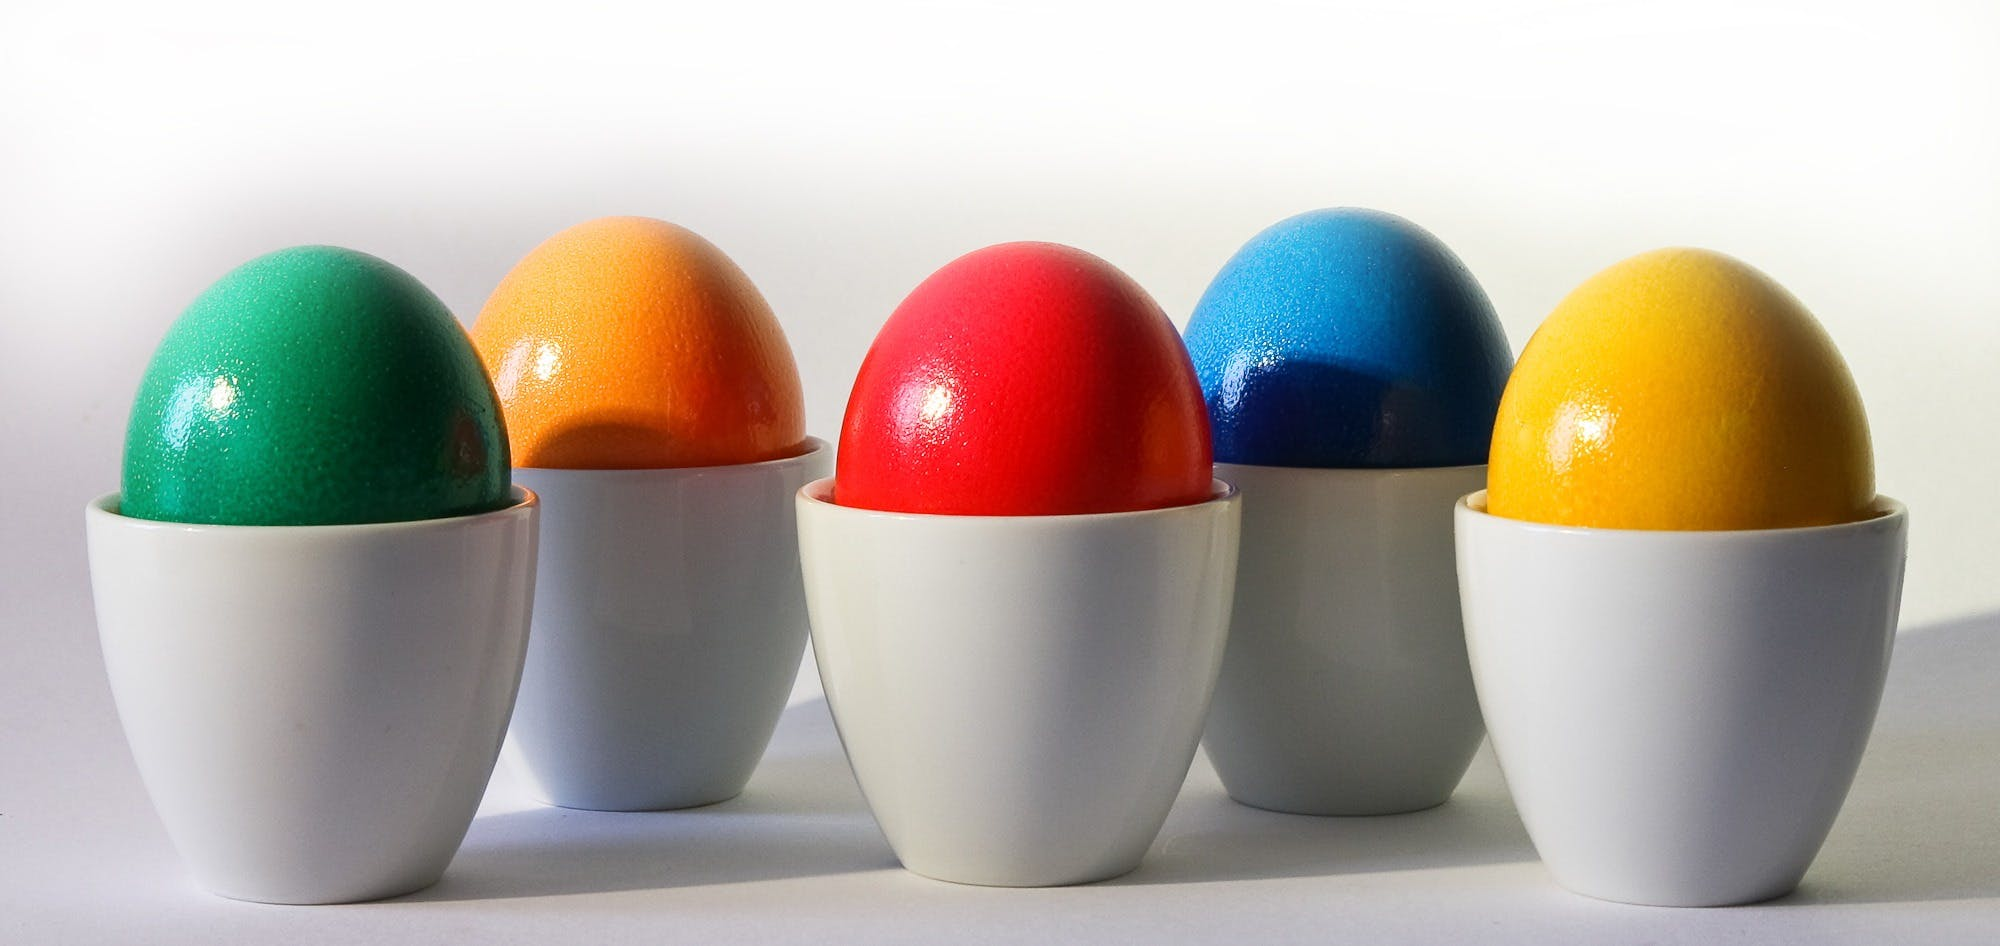 Multicolored Egg Ornament on White Desk